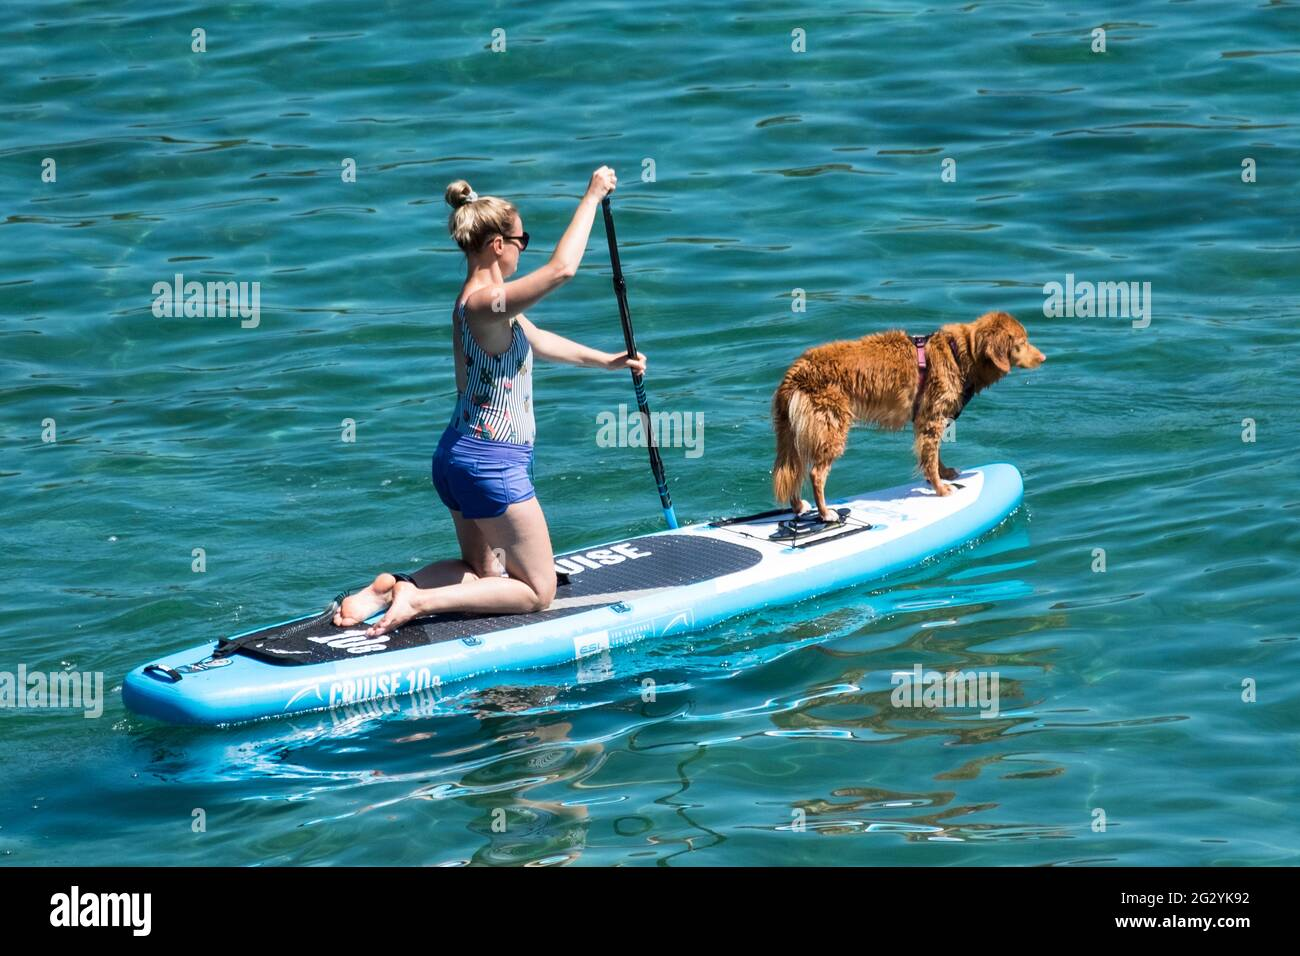 Coverack, Cornwall, UK. 13th June, 2021. A woman paddle boarding with her dog. Hot sunny day on the cornish coast at coverack Stock Photo